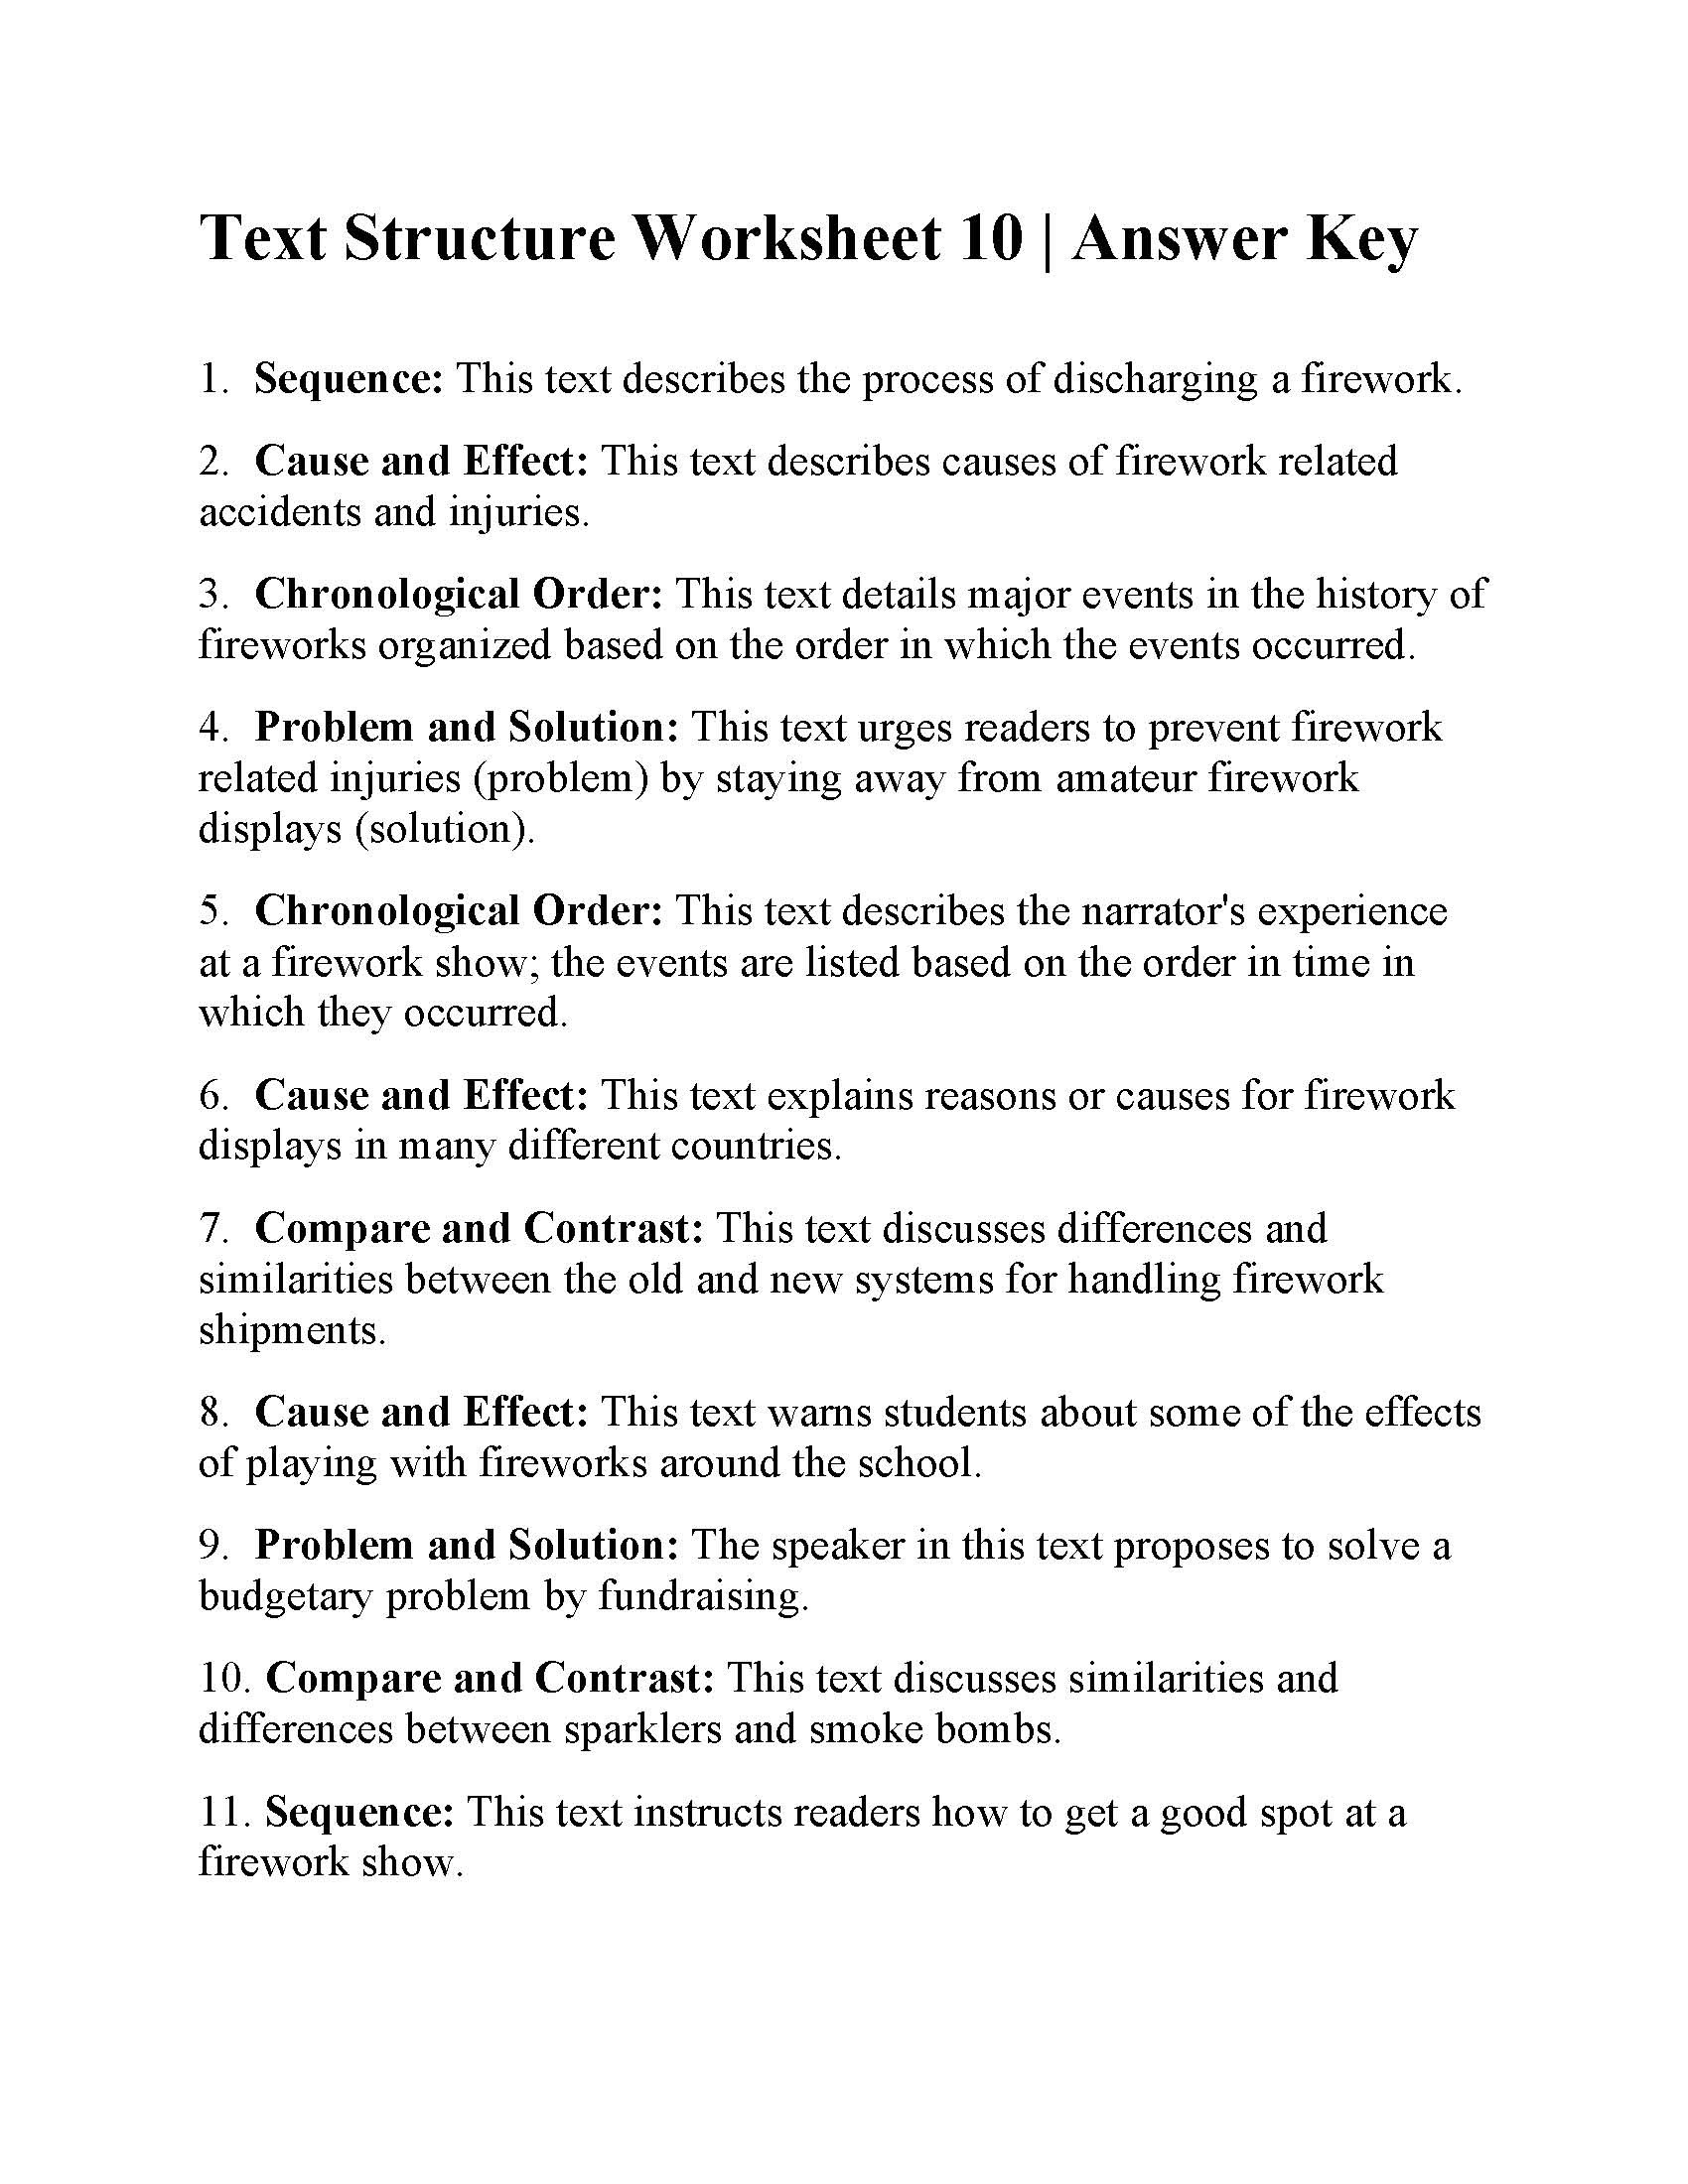 Text Structure 5th Grade Worksheets 6th Std Math Cbse Worksheets Schizoaffective Disorder